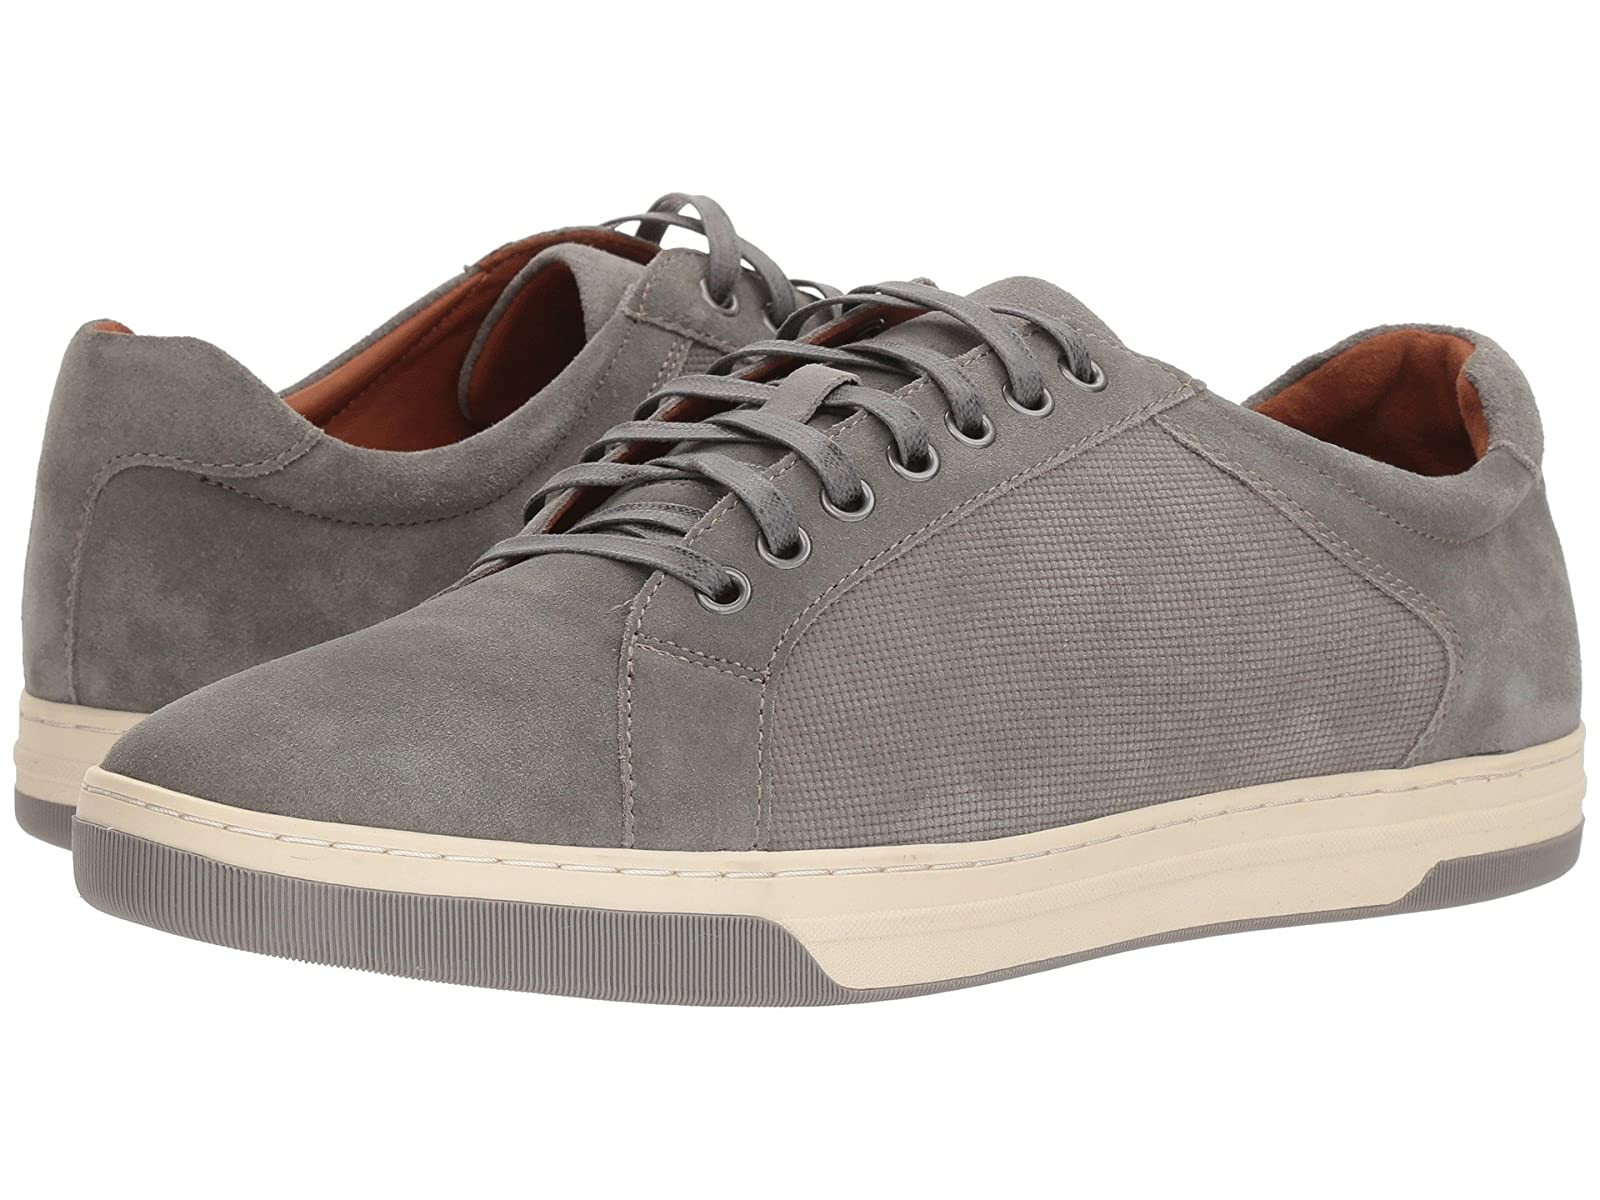 Johnston & Murphy Fenton Casual Dress Lace to Toe SneakerCheap and distinctive eye-catching shoes